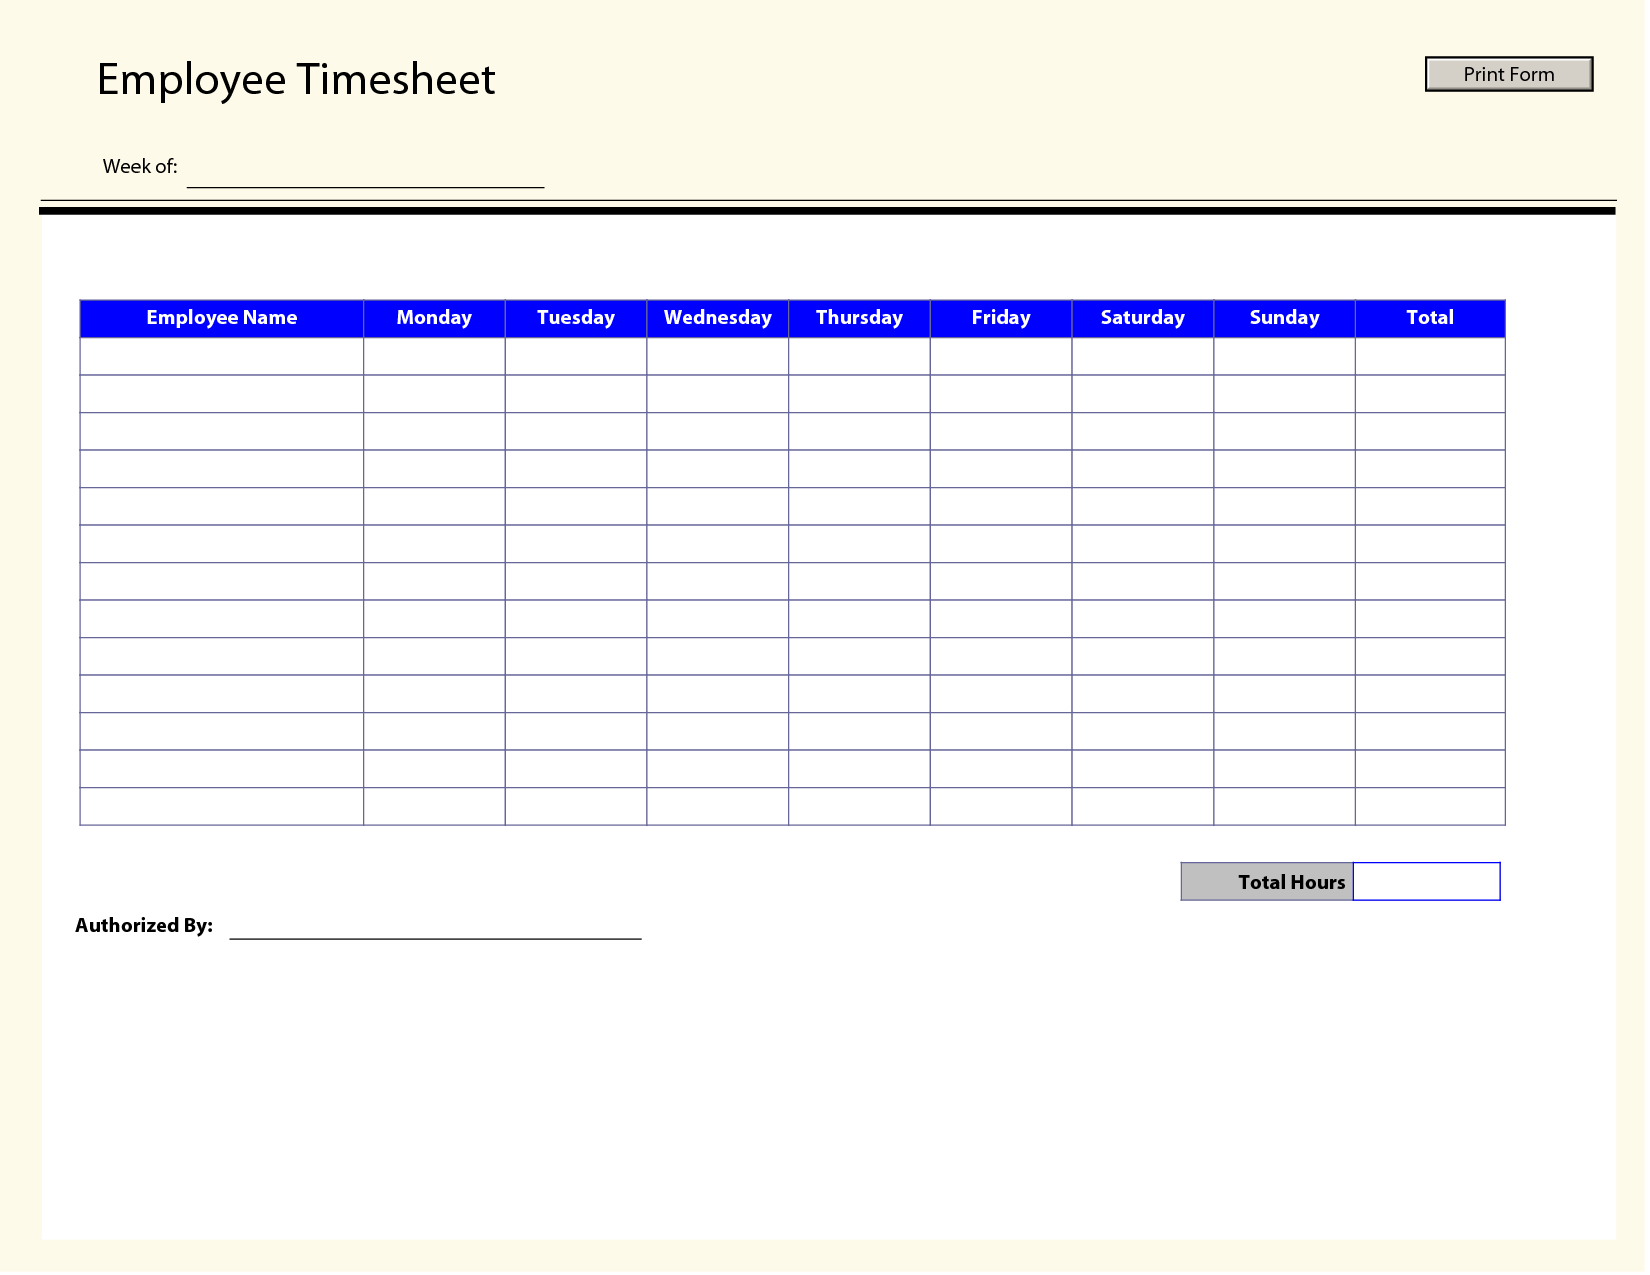 Printable Time Sheets | Free Printable Employee Timesheets Employee  Timesheet Print Form Week .